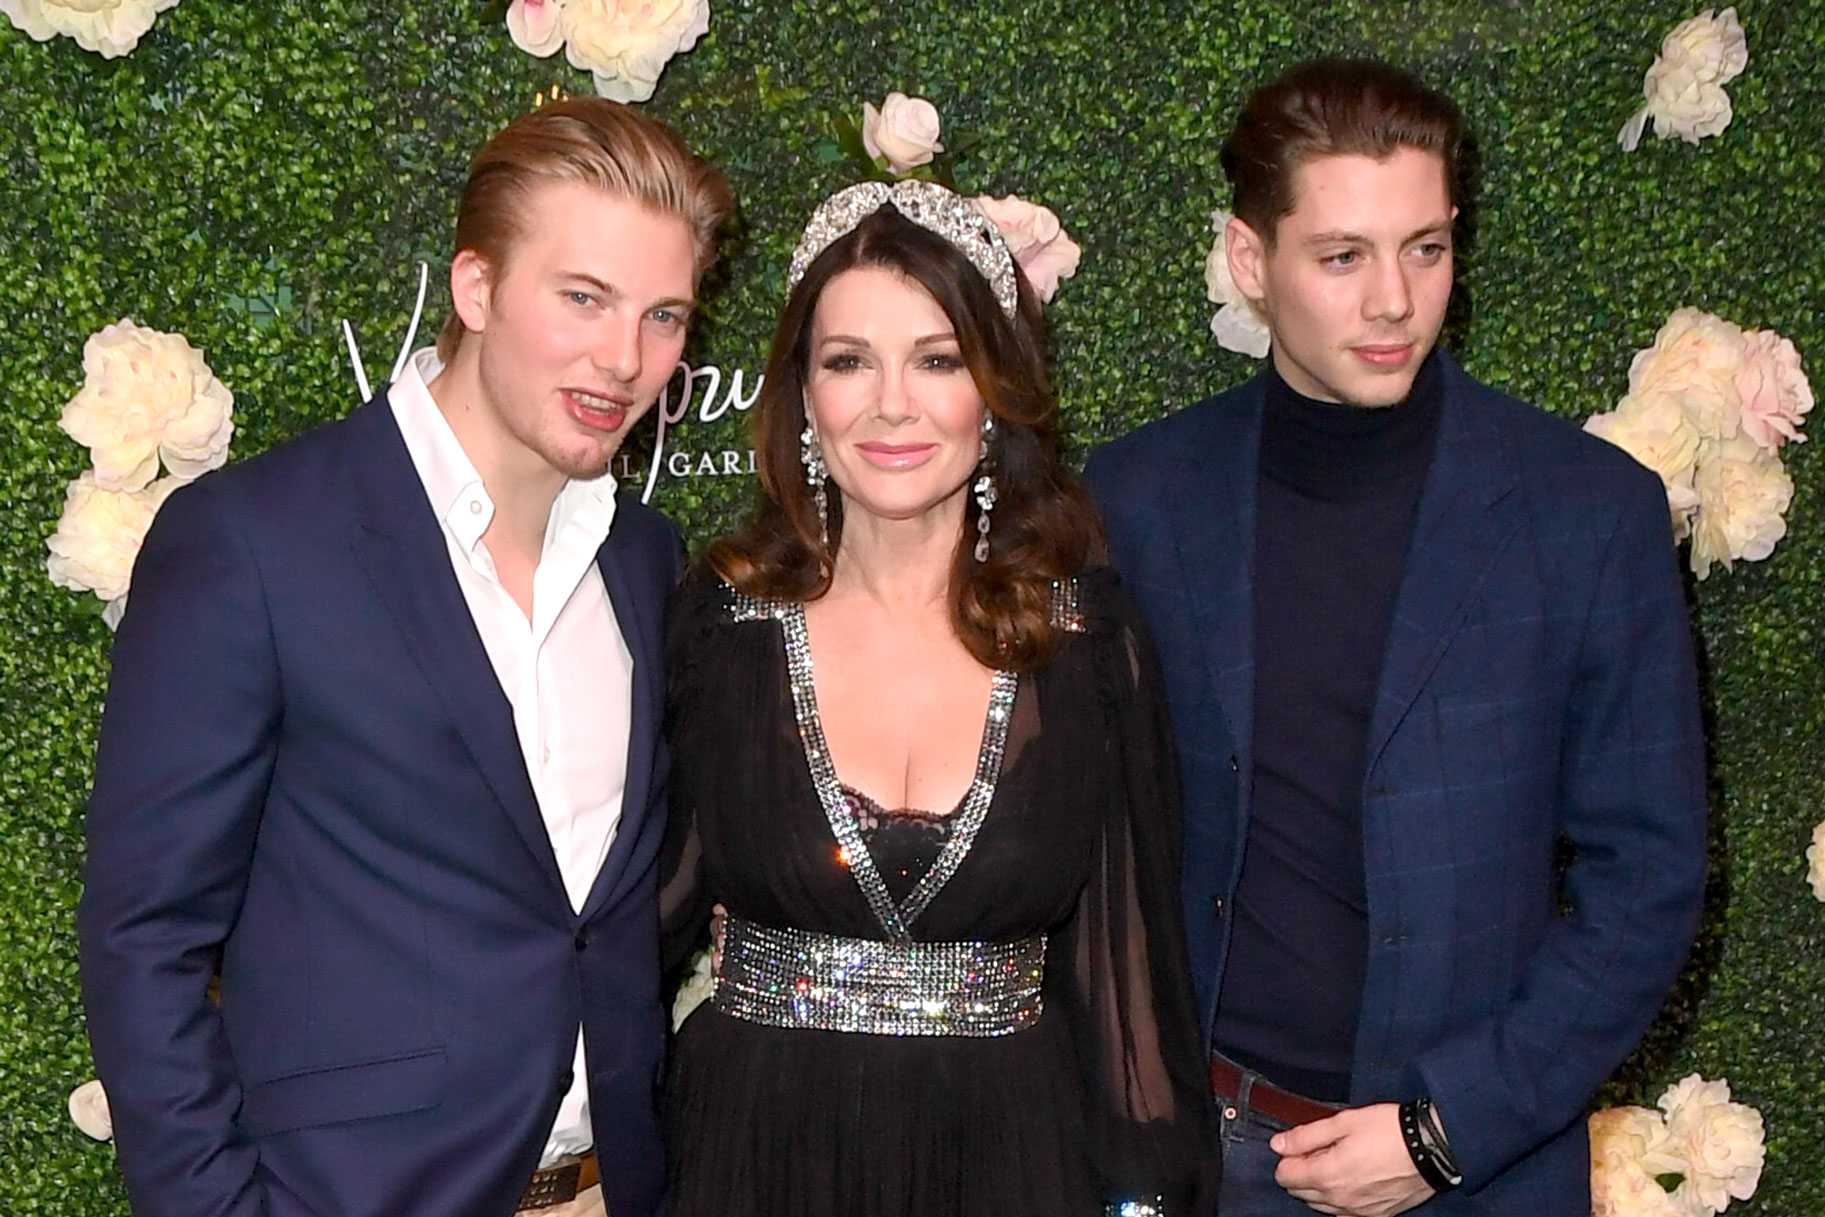 Lisa Vanderpump with Nephews Sam and Jack Vanderpump at Vanderpump Cocktail Garden Opening Party